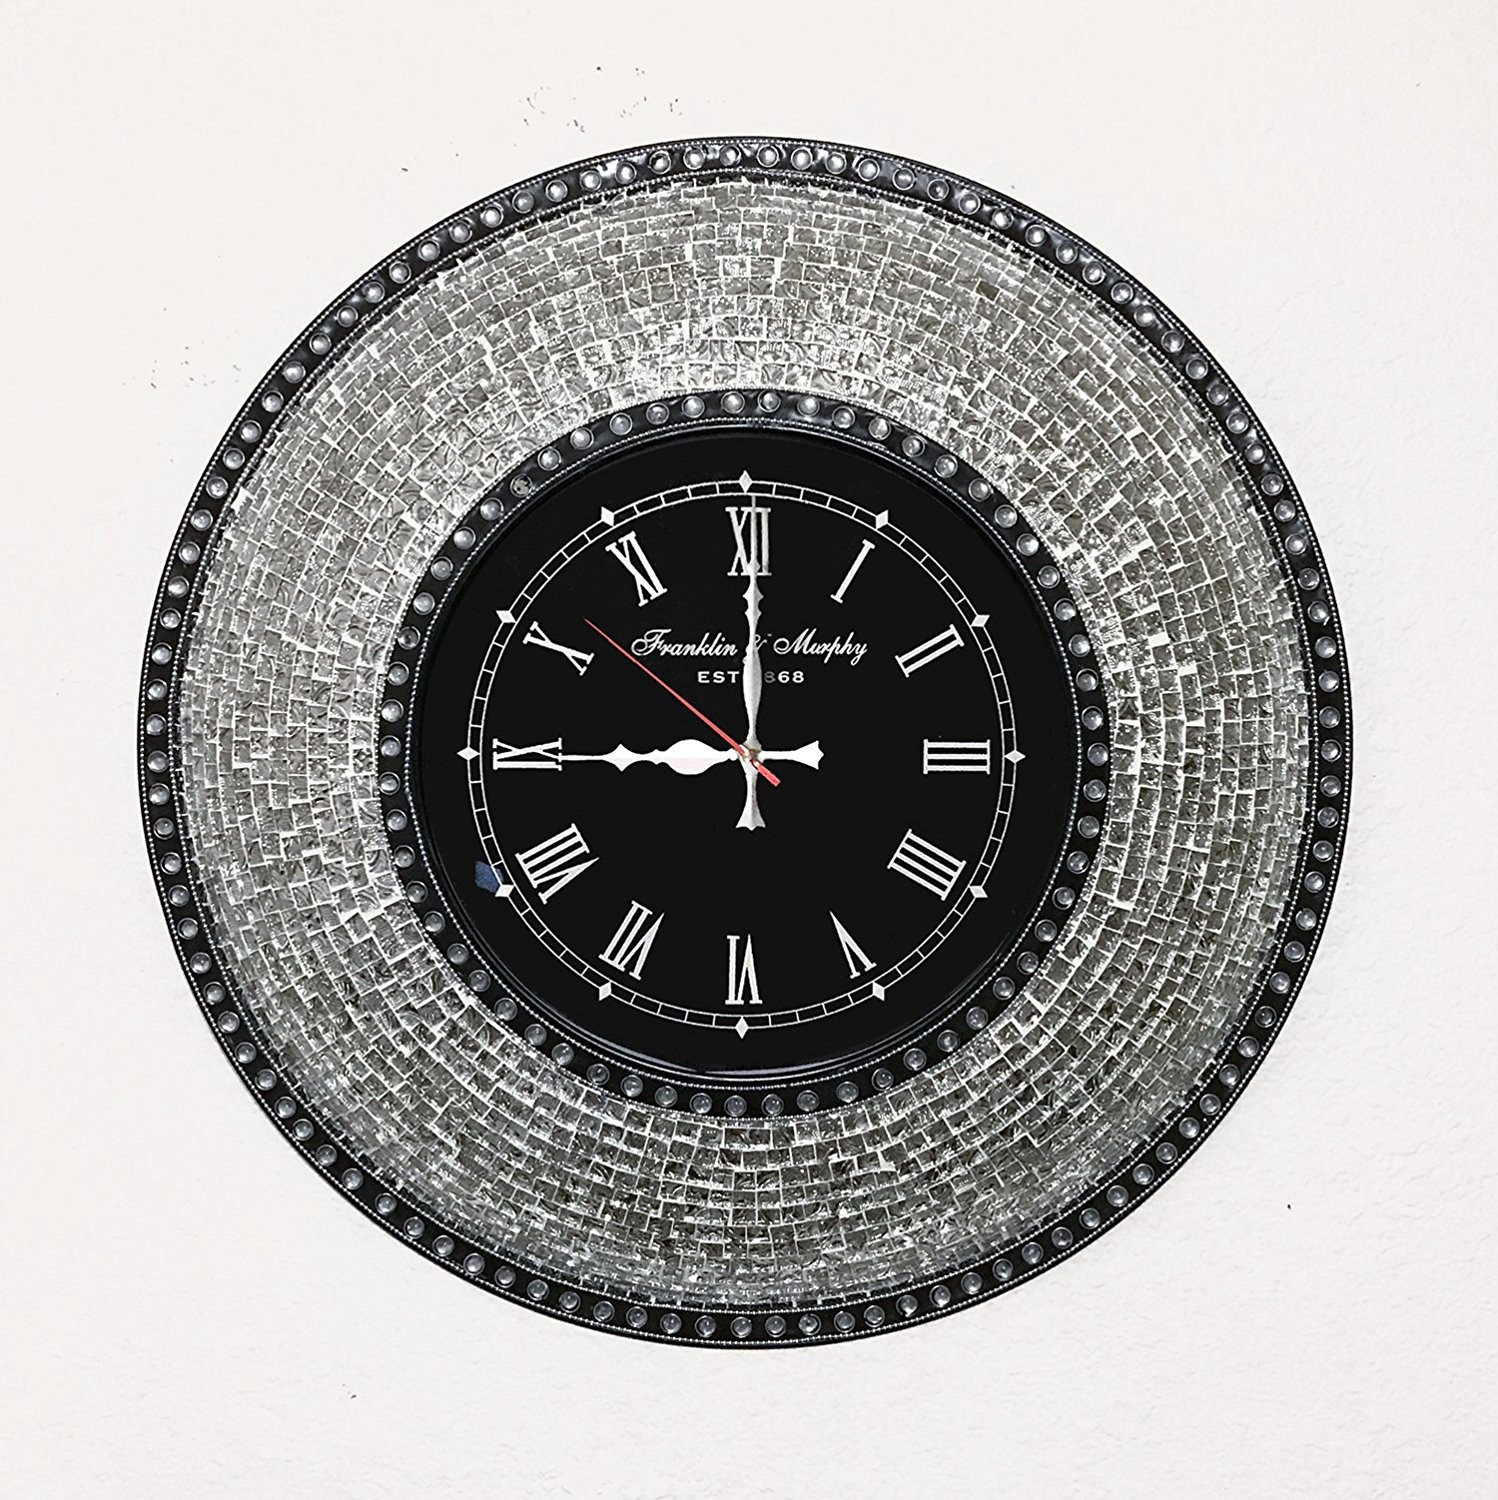 Shop area rugs wall mirror clock table vases online decorshore decorshore decorative mosaic wall clock 225 silent motion with embossed metallic glass mosaic reviewsmspy